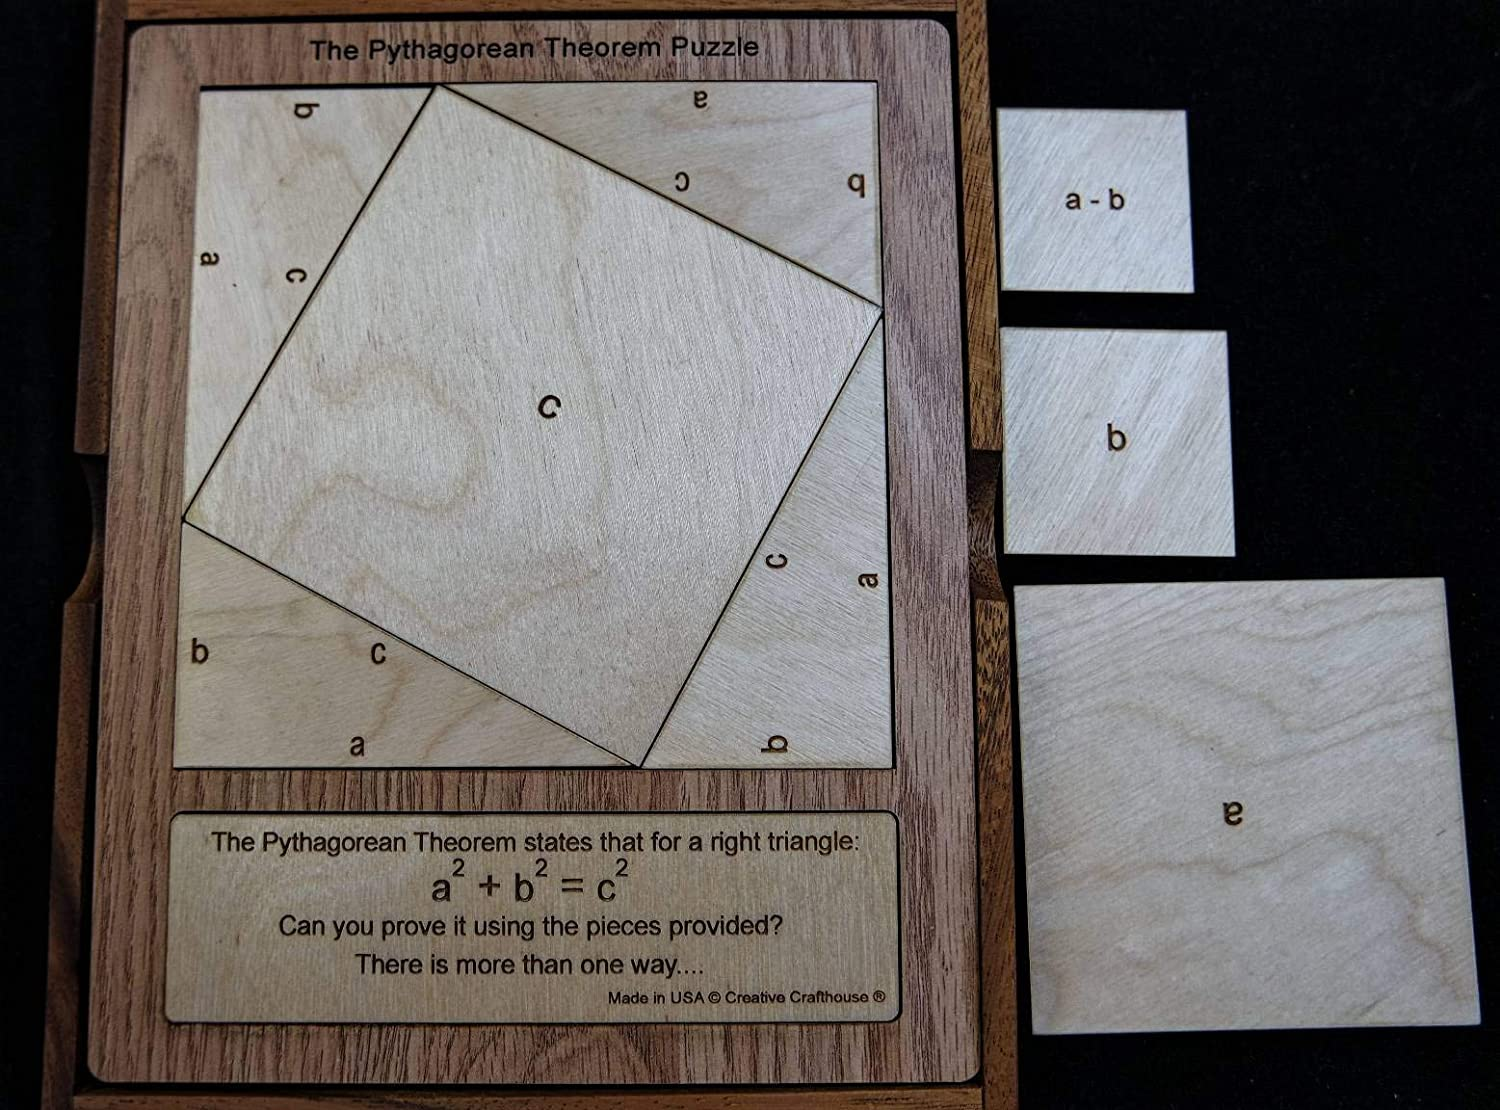 The Pythagorean Theorem Puzzle